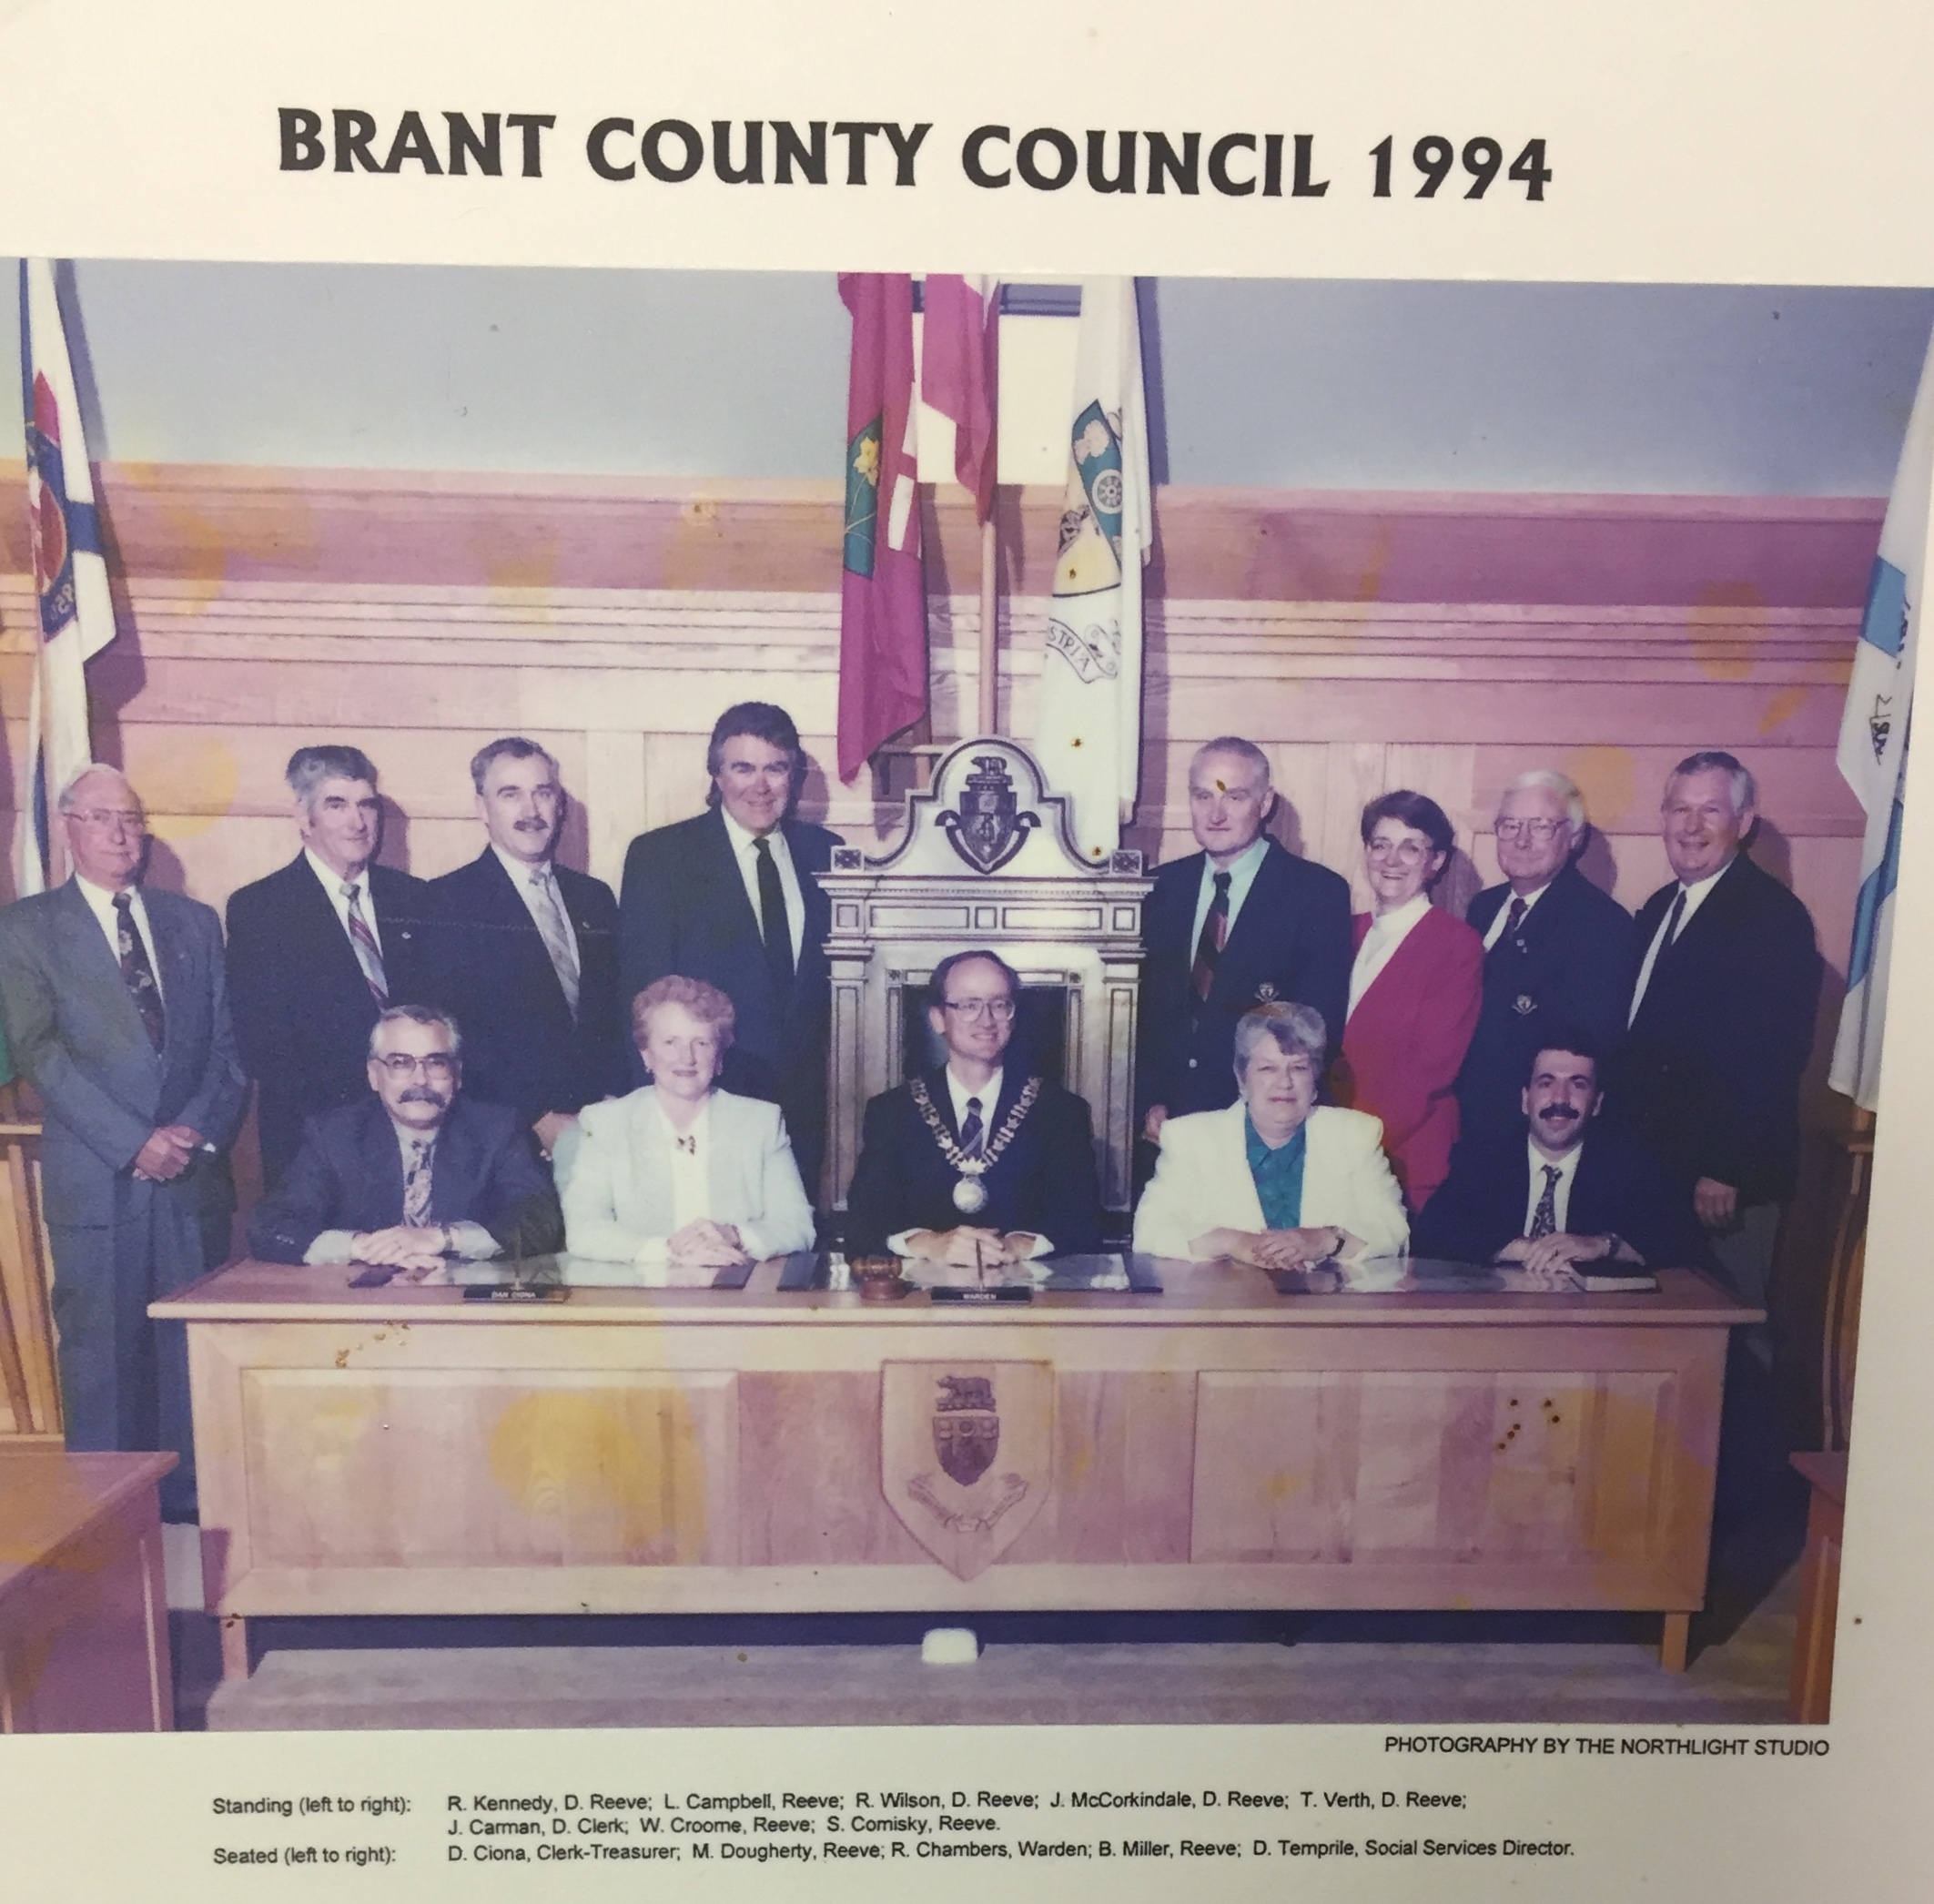 Brant County Council, 1994 -